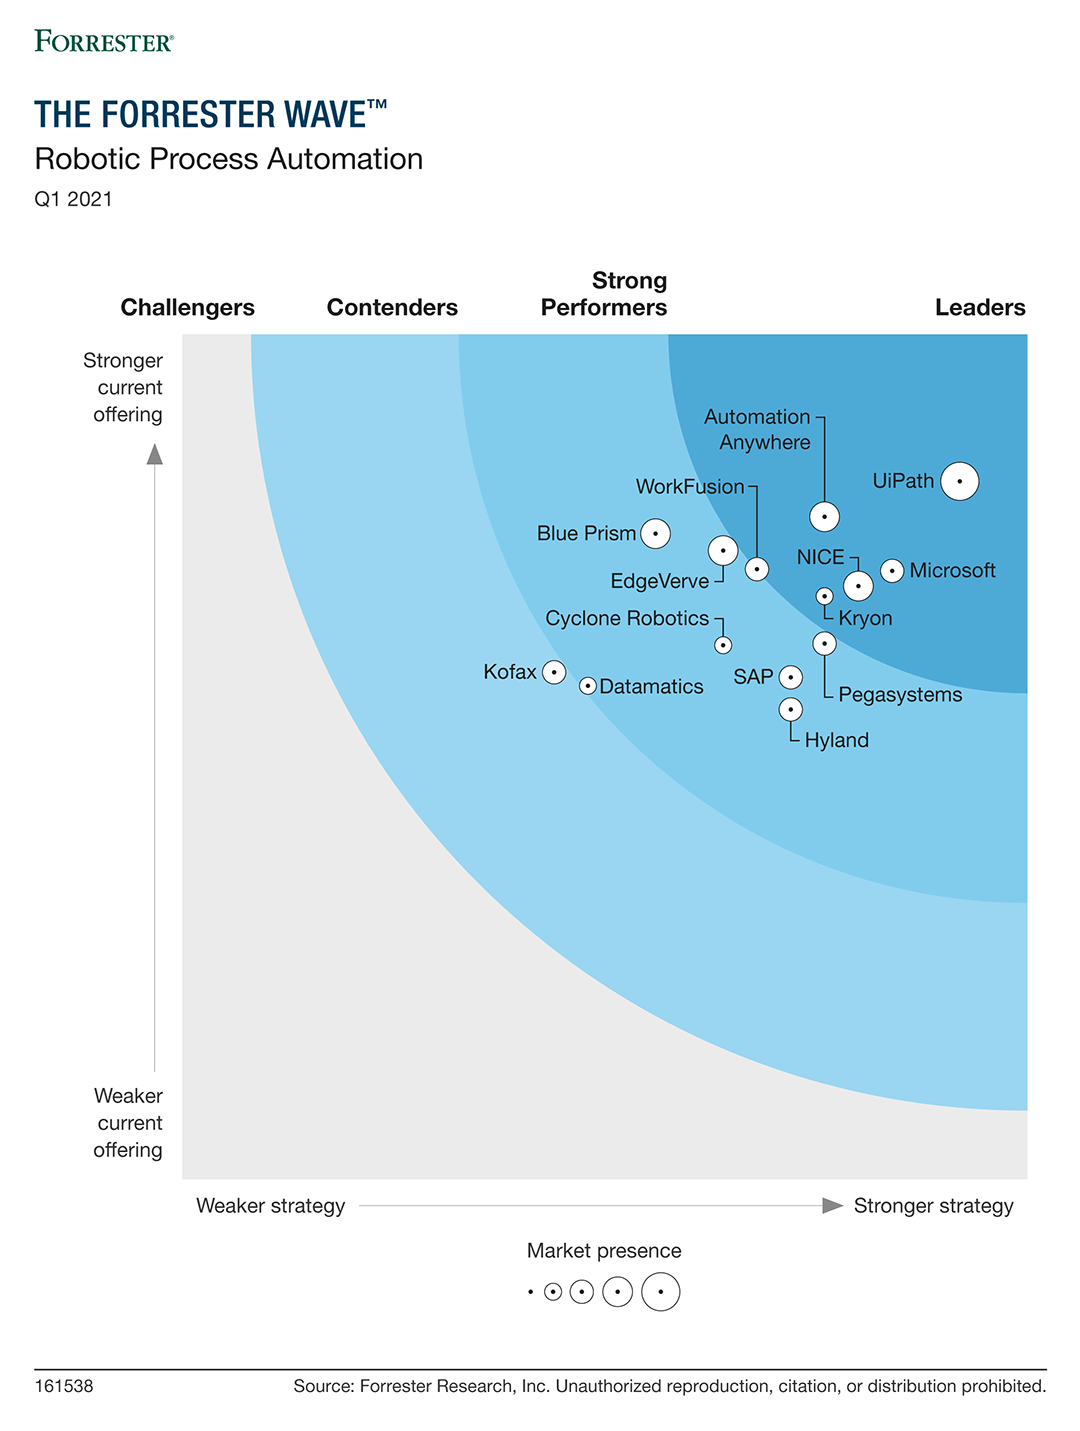 UiPath Named a Leader in 2021 Forrester Wave RPA Report